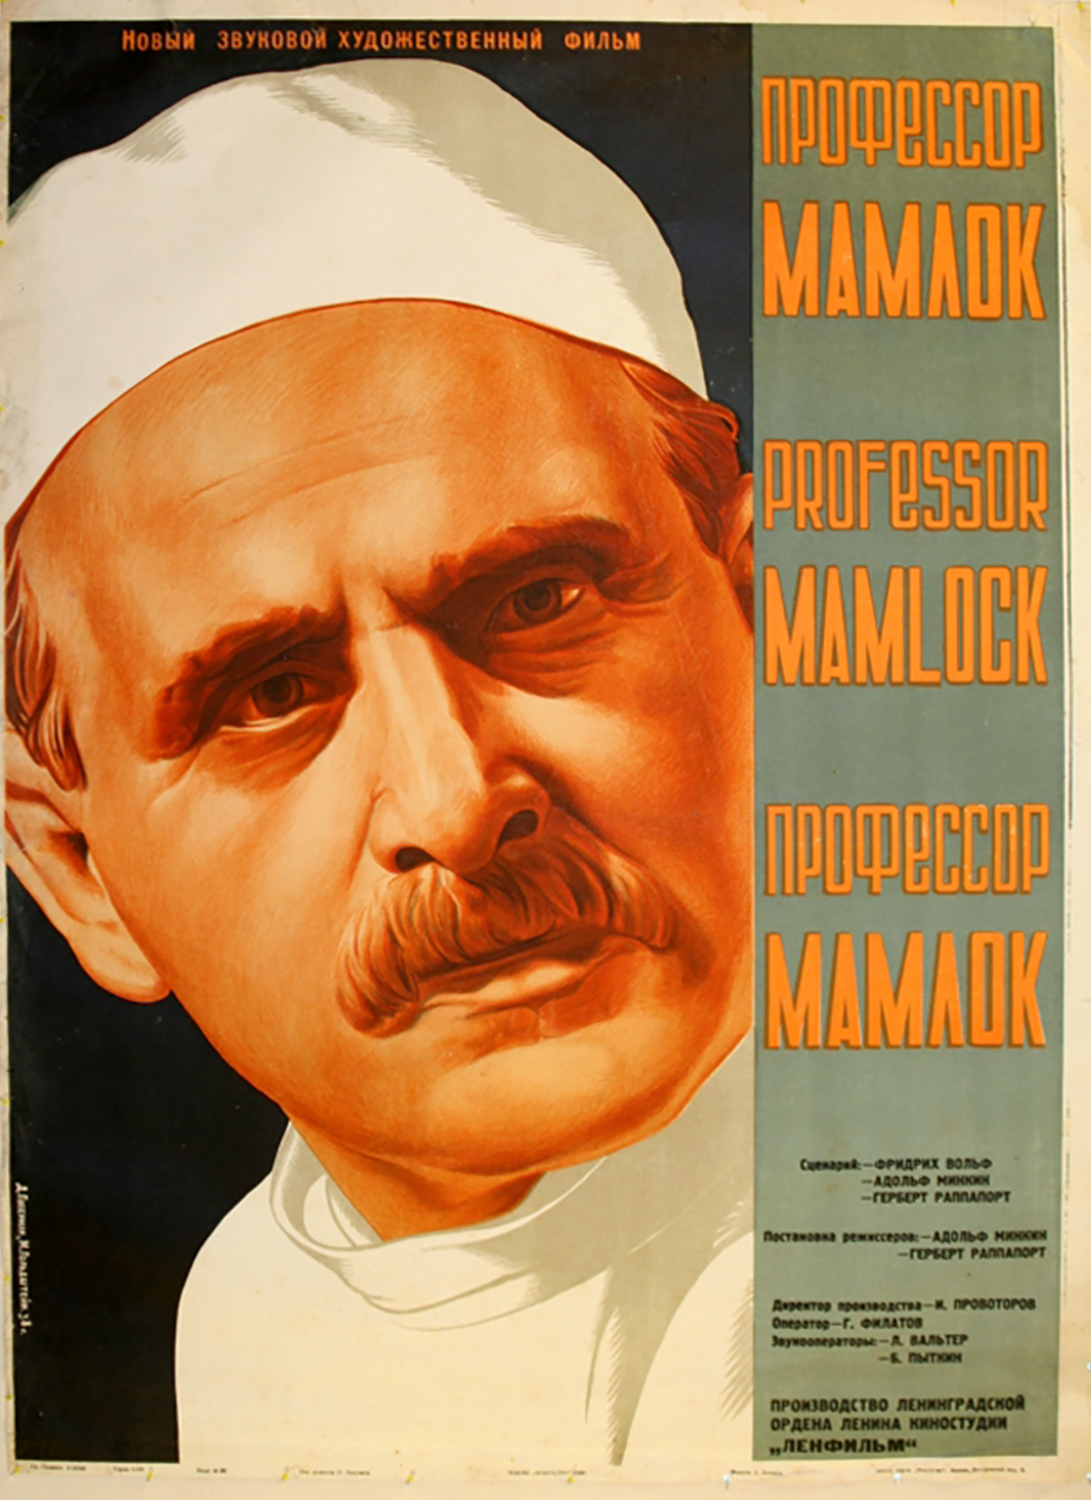 """Professor Mamlock"" poster and film still.  Directed by Herbert Rappaport and Adolf Minkin, 1938."